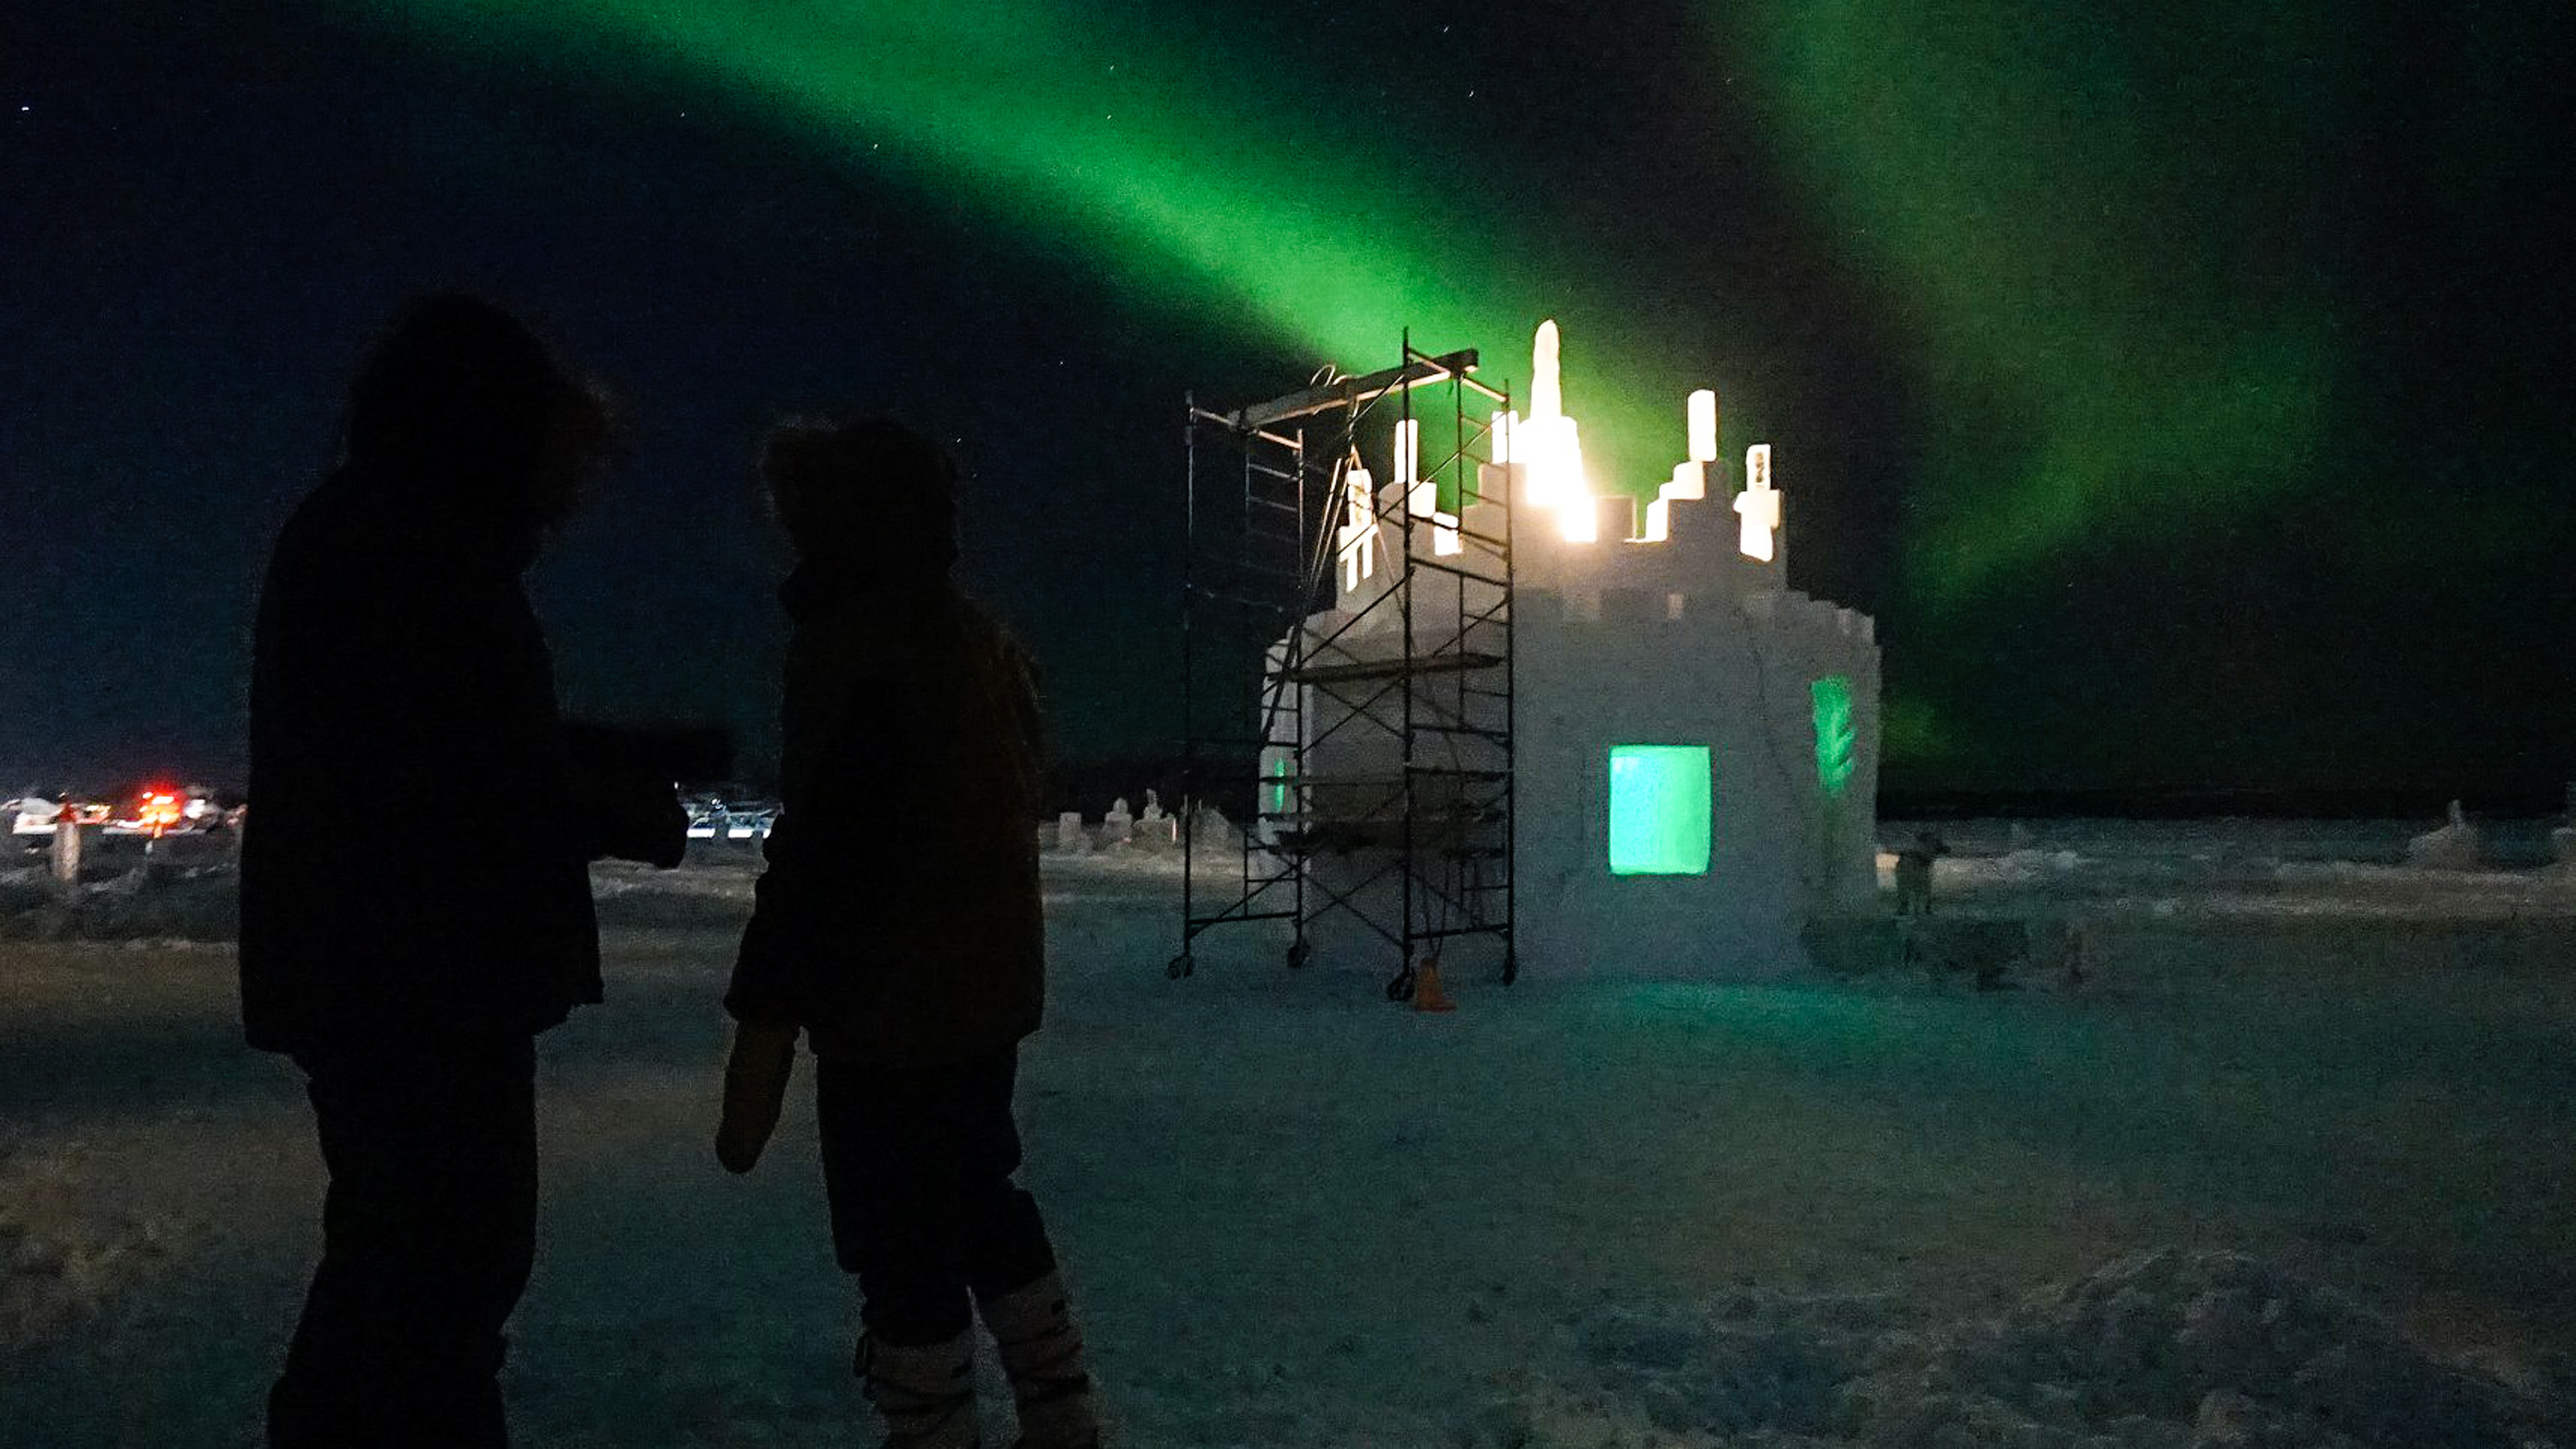 A photo posted to Facebook by Snowking's Winter Festival shows a warming hut on the ice